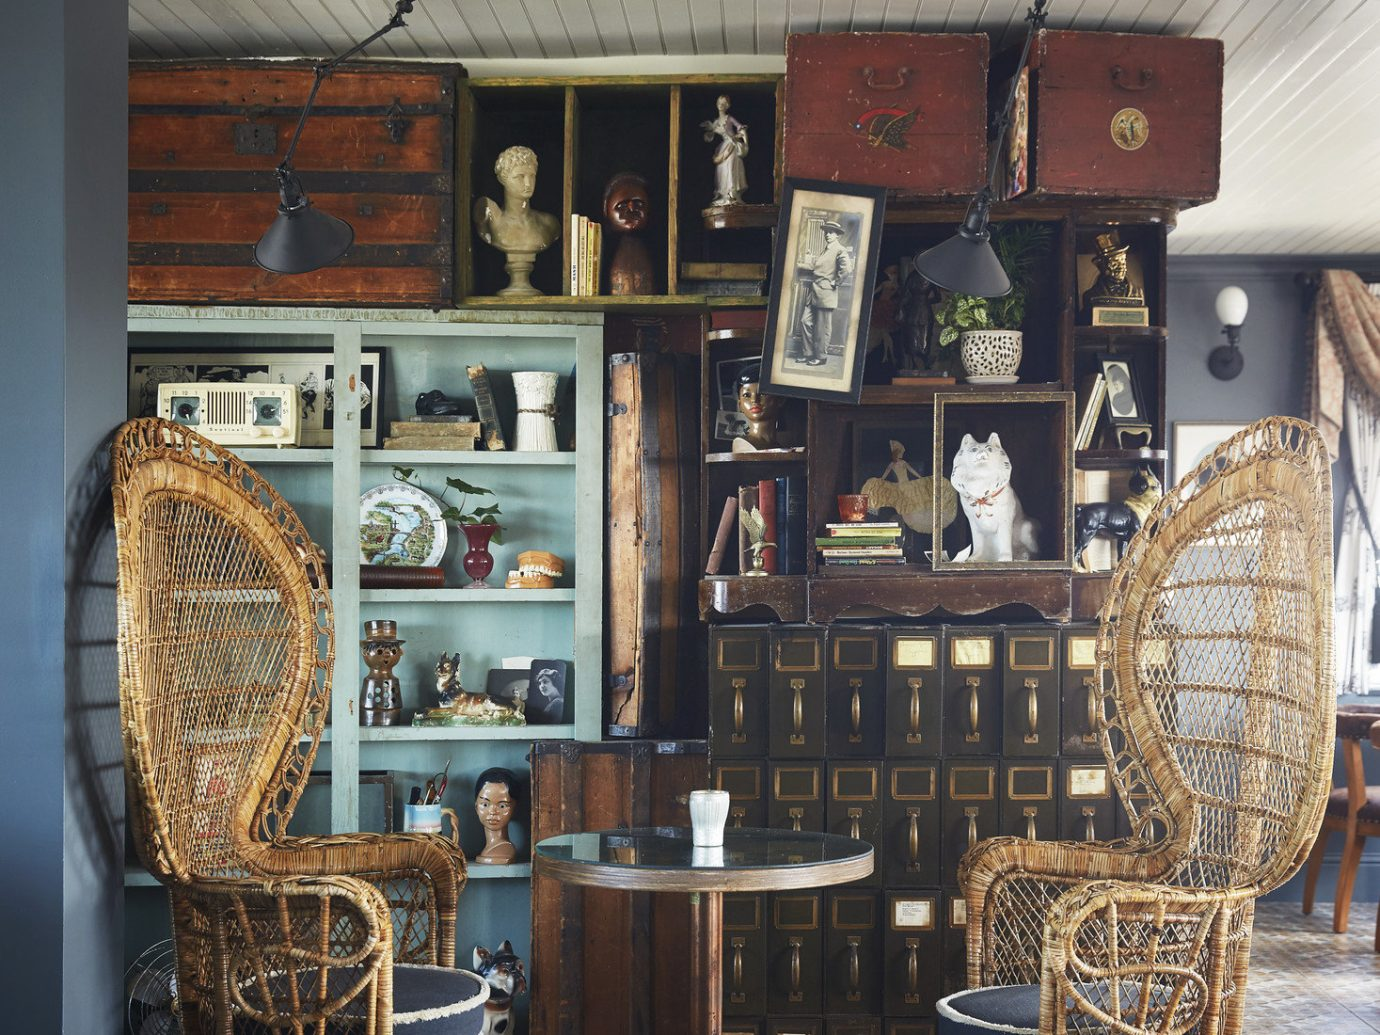 antiques artistic artsy chairs charming cozy decor detail furniture Girls Getaways New Orleans quaint quirky table Trip Ideas vintage Weekend Getaways indoor room wood interior design home dining room living room Design antique old